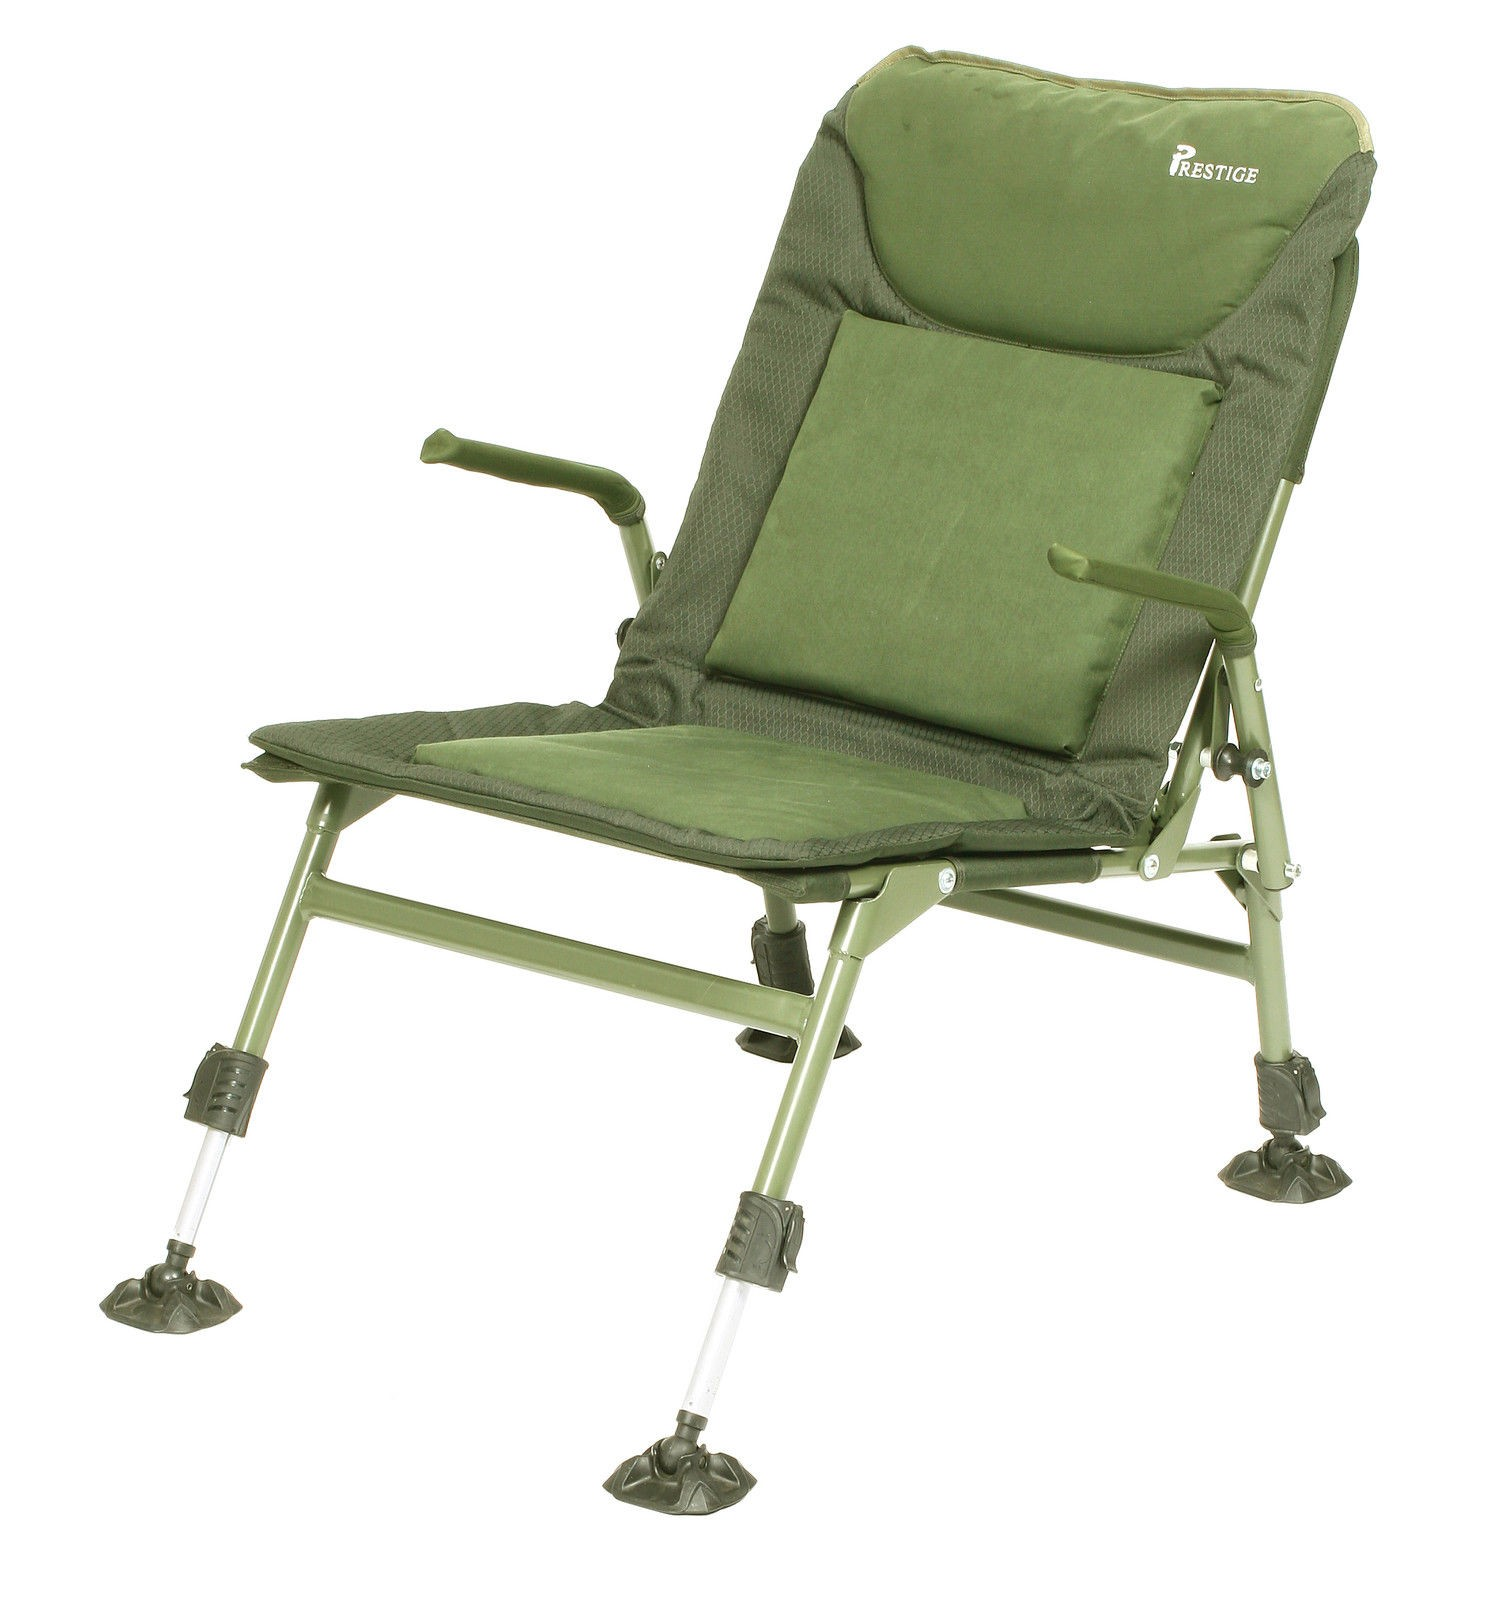 banquet chairs with arms oxo seedling high chair prestige lightweight folding arm